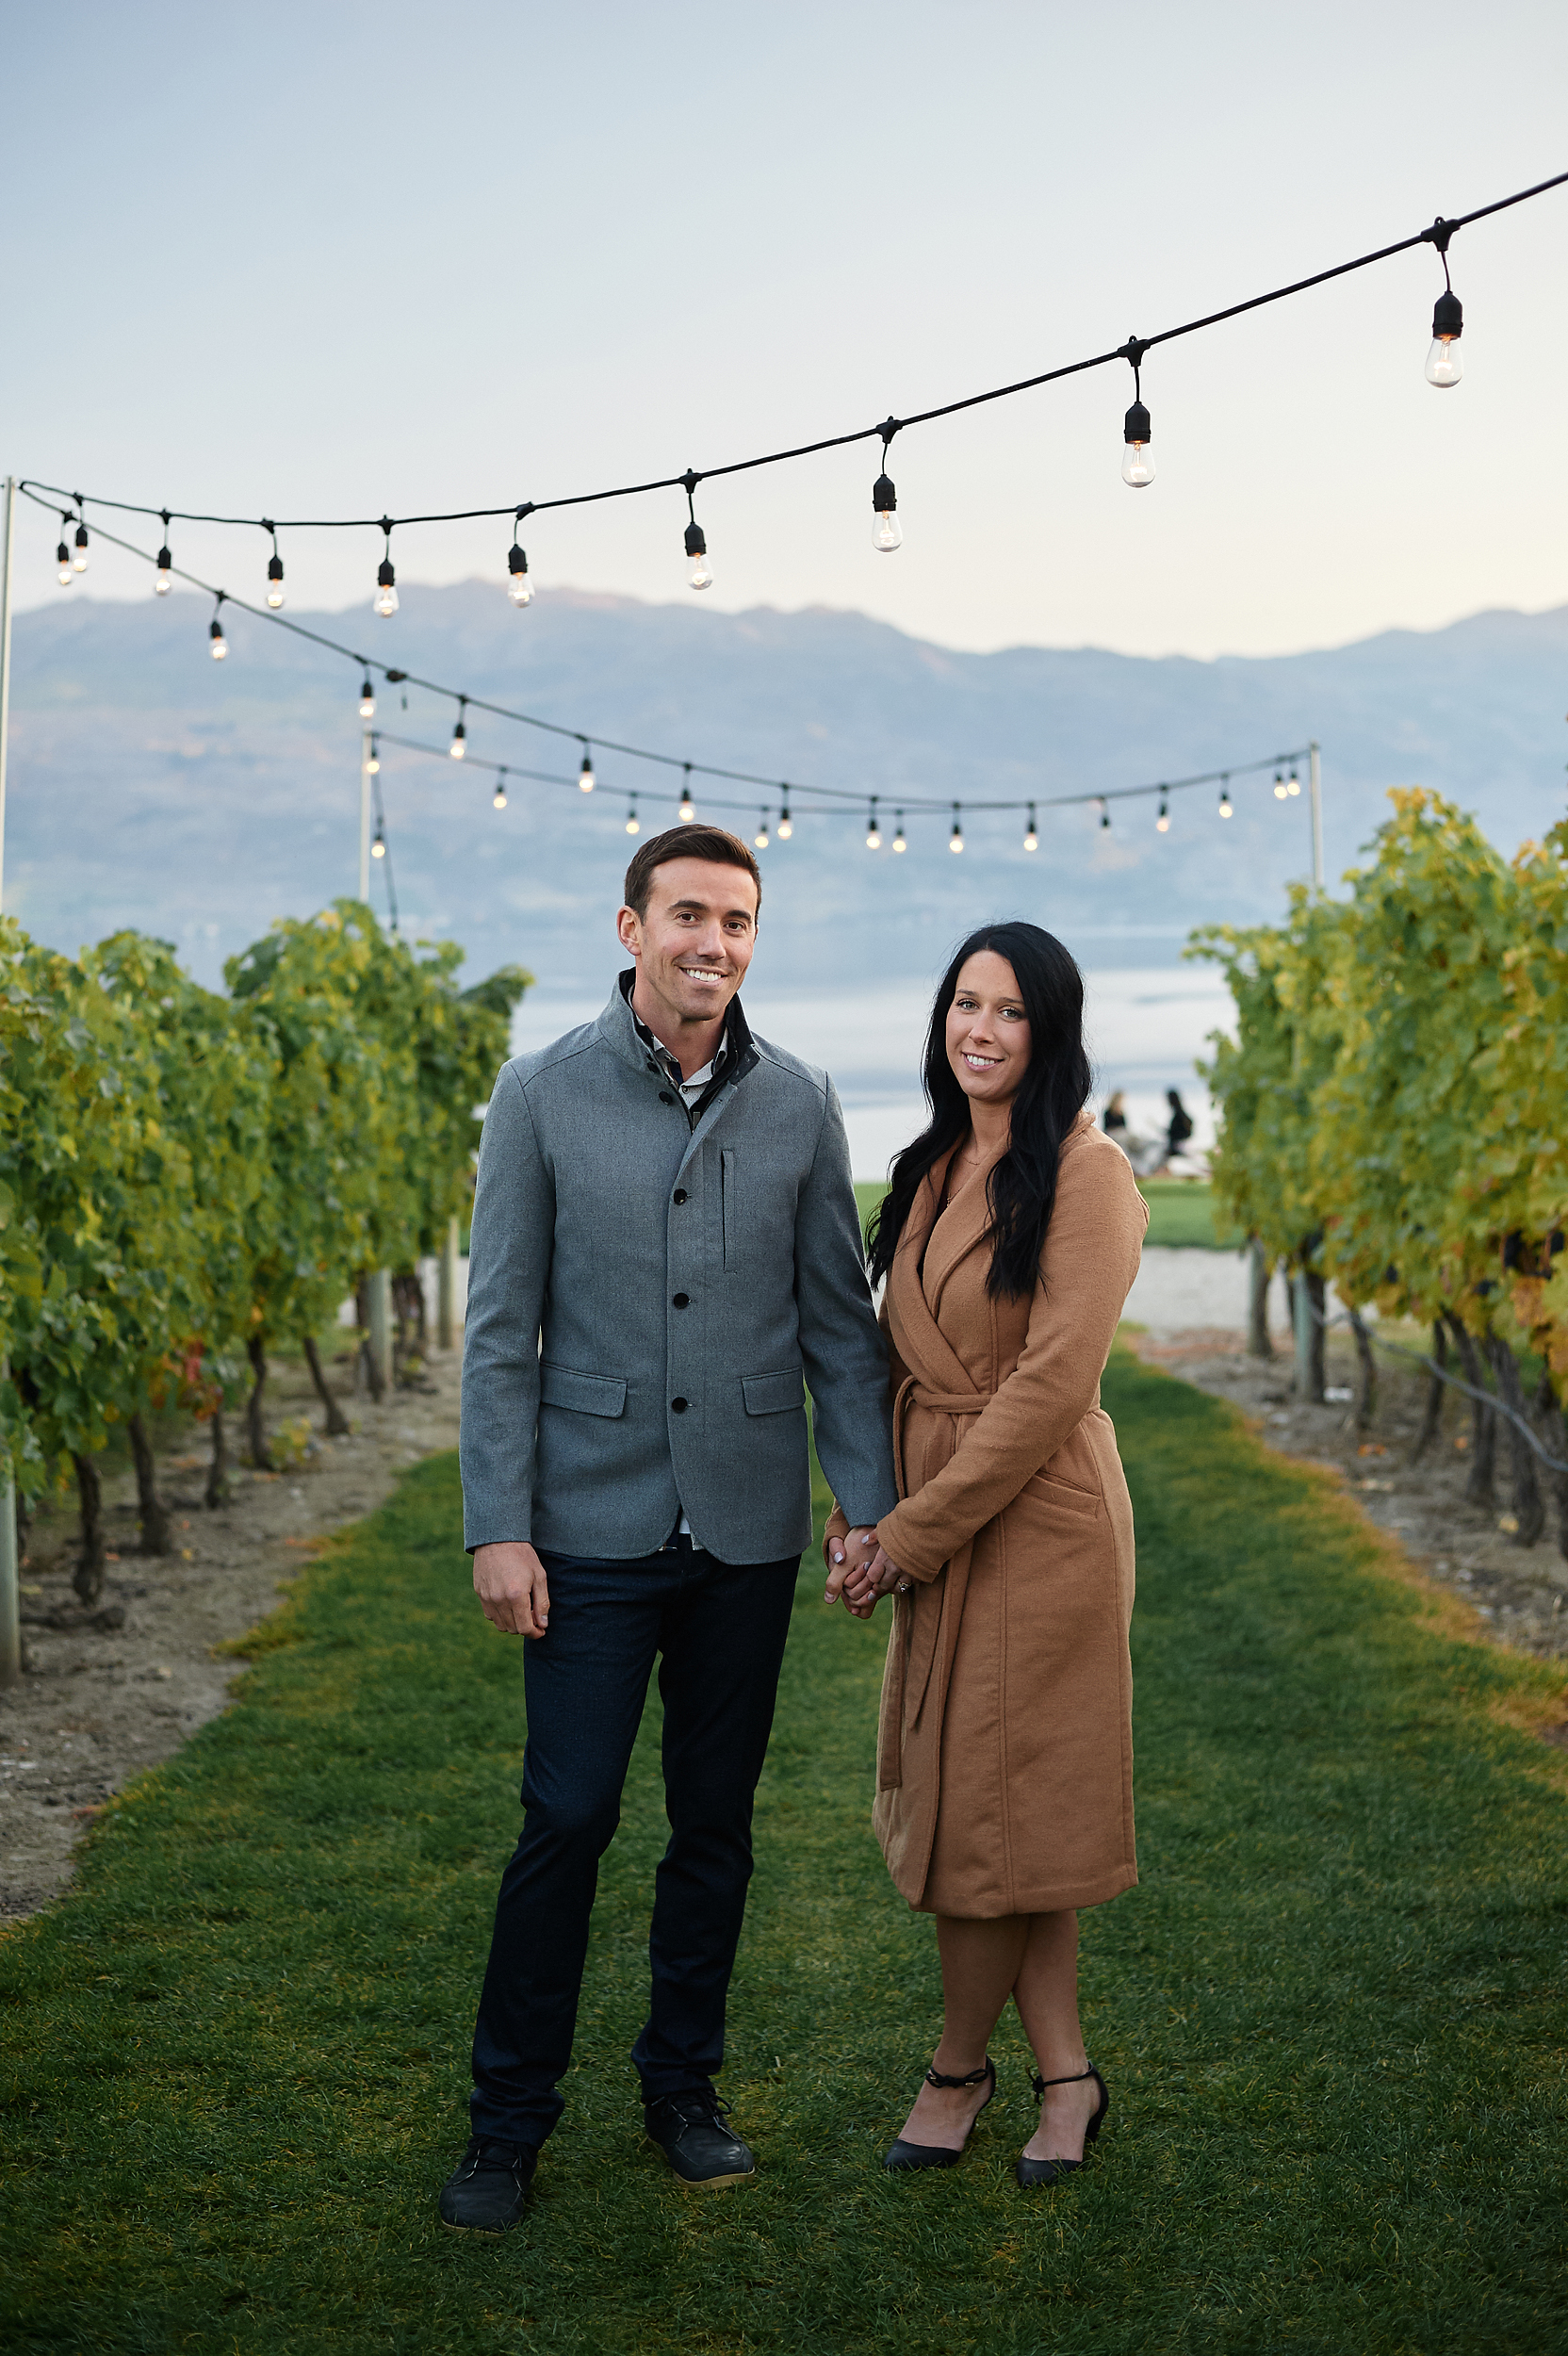 formal photo of engaged couple in vineyard